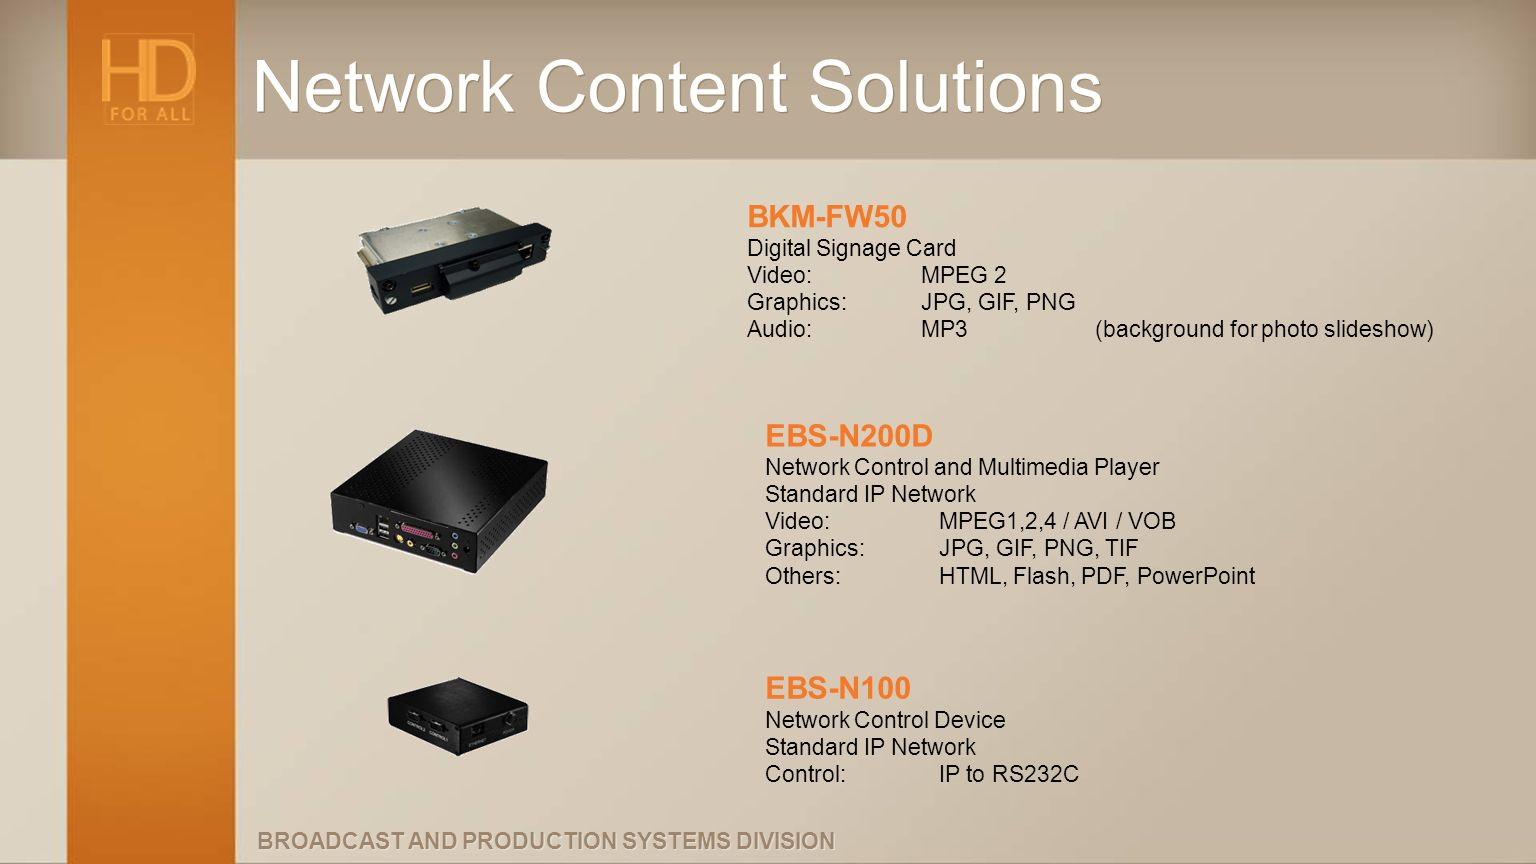 Network Content Solutions